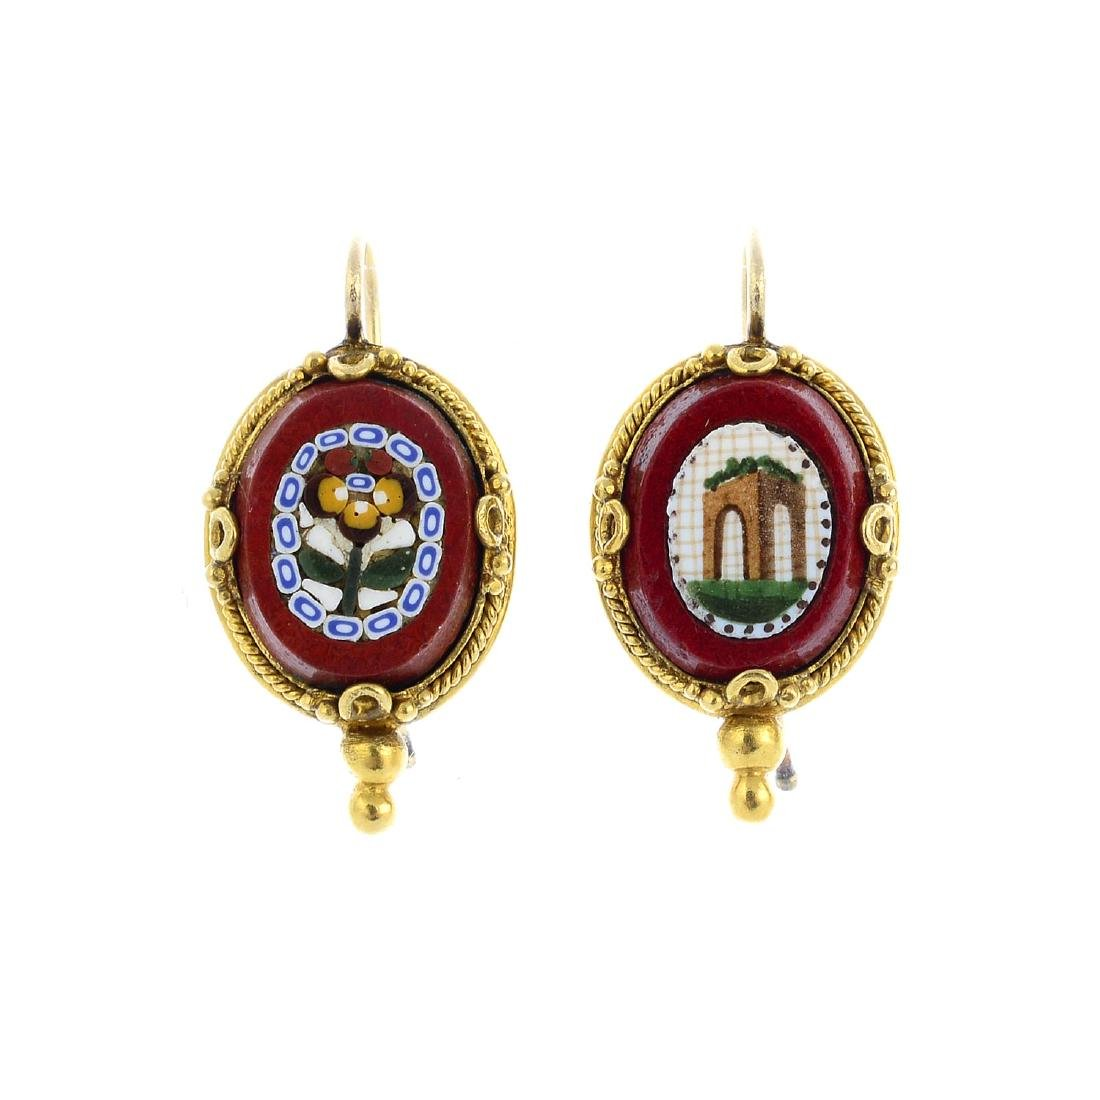 A pair of jasper and gem-set earrings. Each designed as